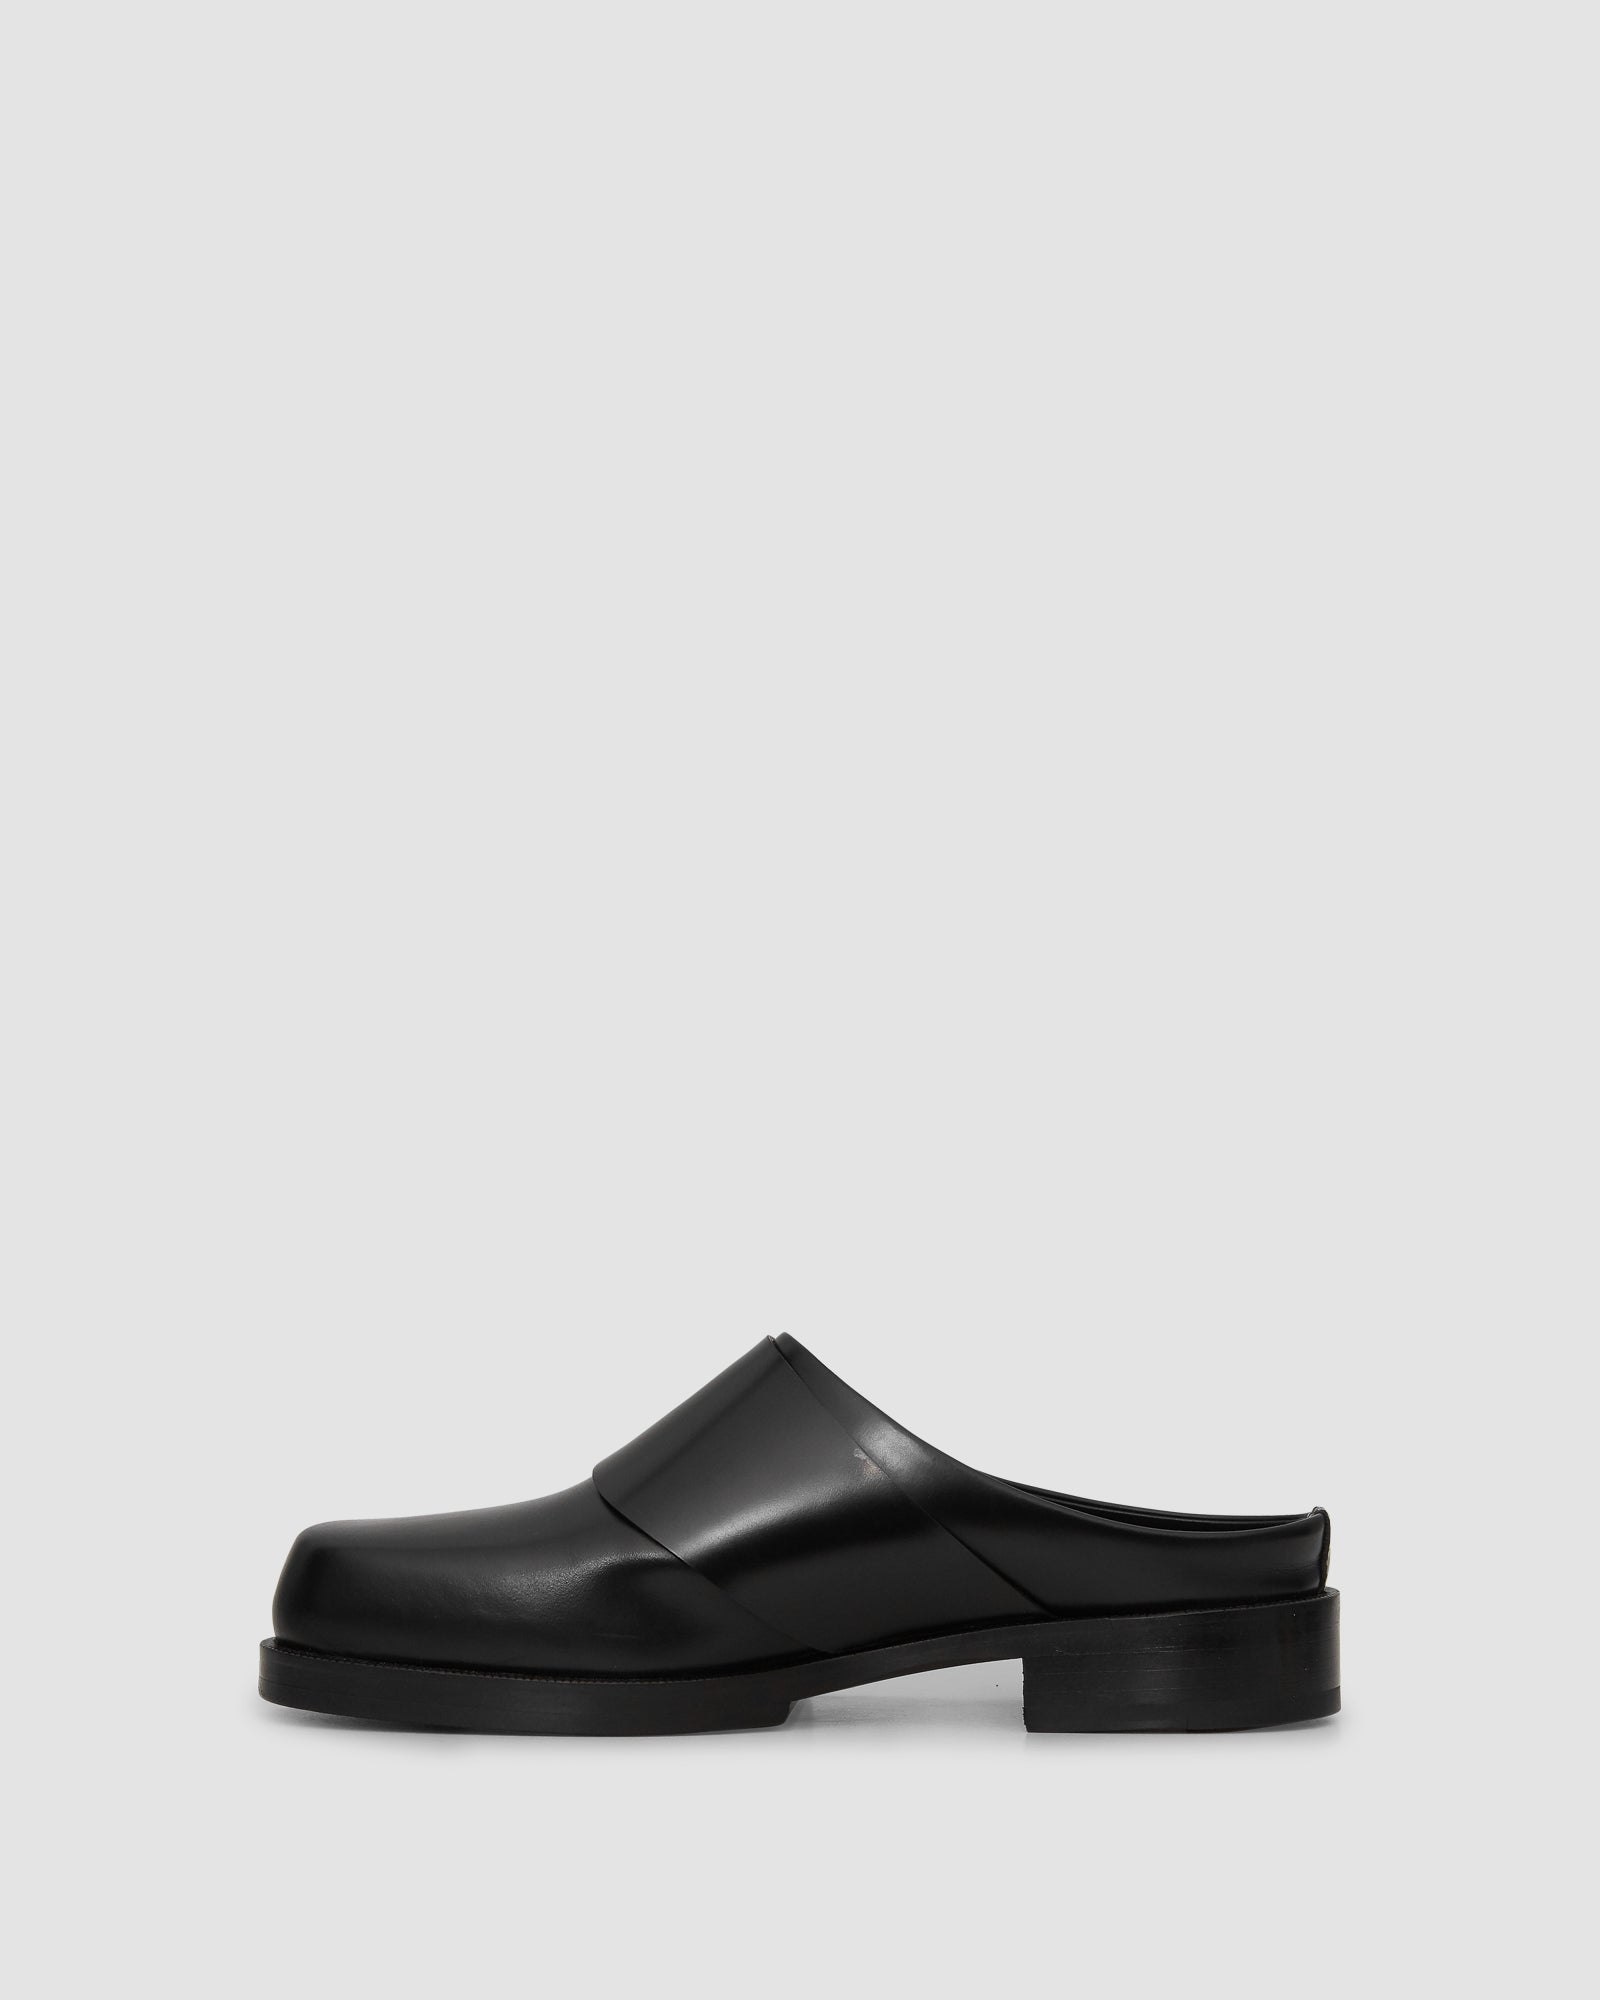 1017 ALYX 9SM | FORMAL CLOG W BUCKLE | Shoe | Black, Google Shopping, Man, MULES, S20, S20 Drop II, Shoes, UNISEX, Woman